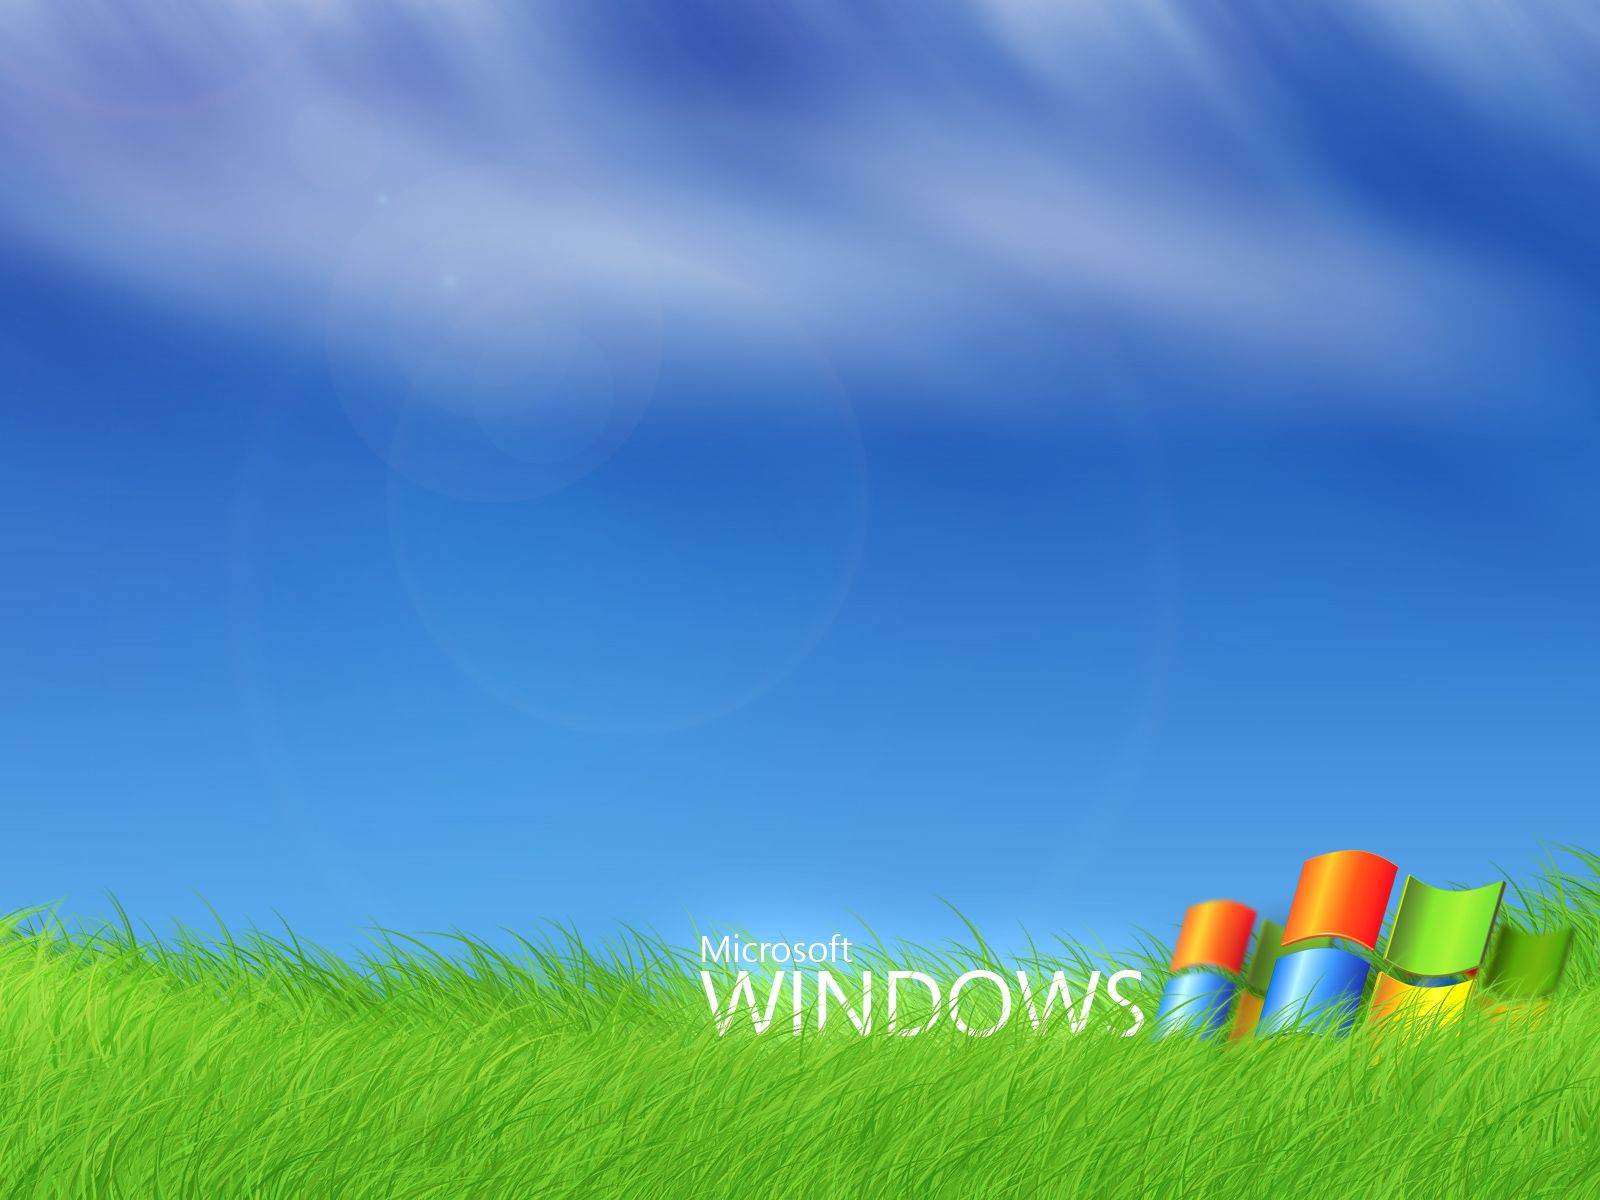 microsoft windows normal is an hd wallpaper posted in logos category you can edit original